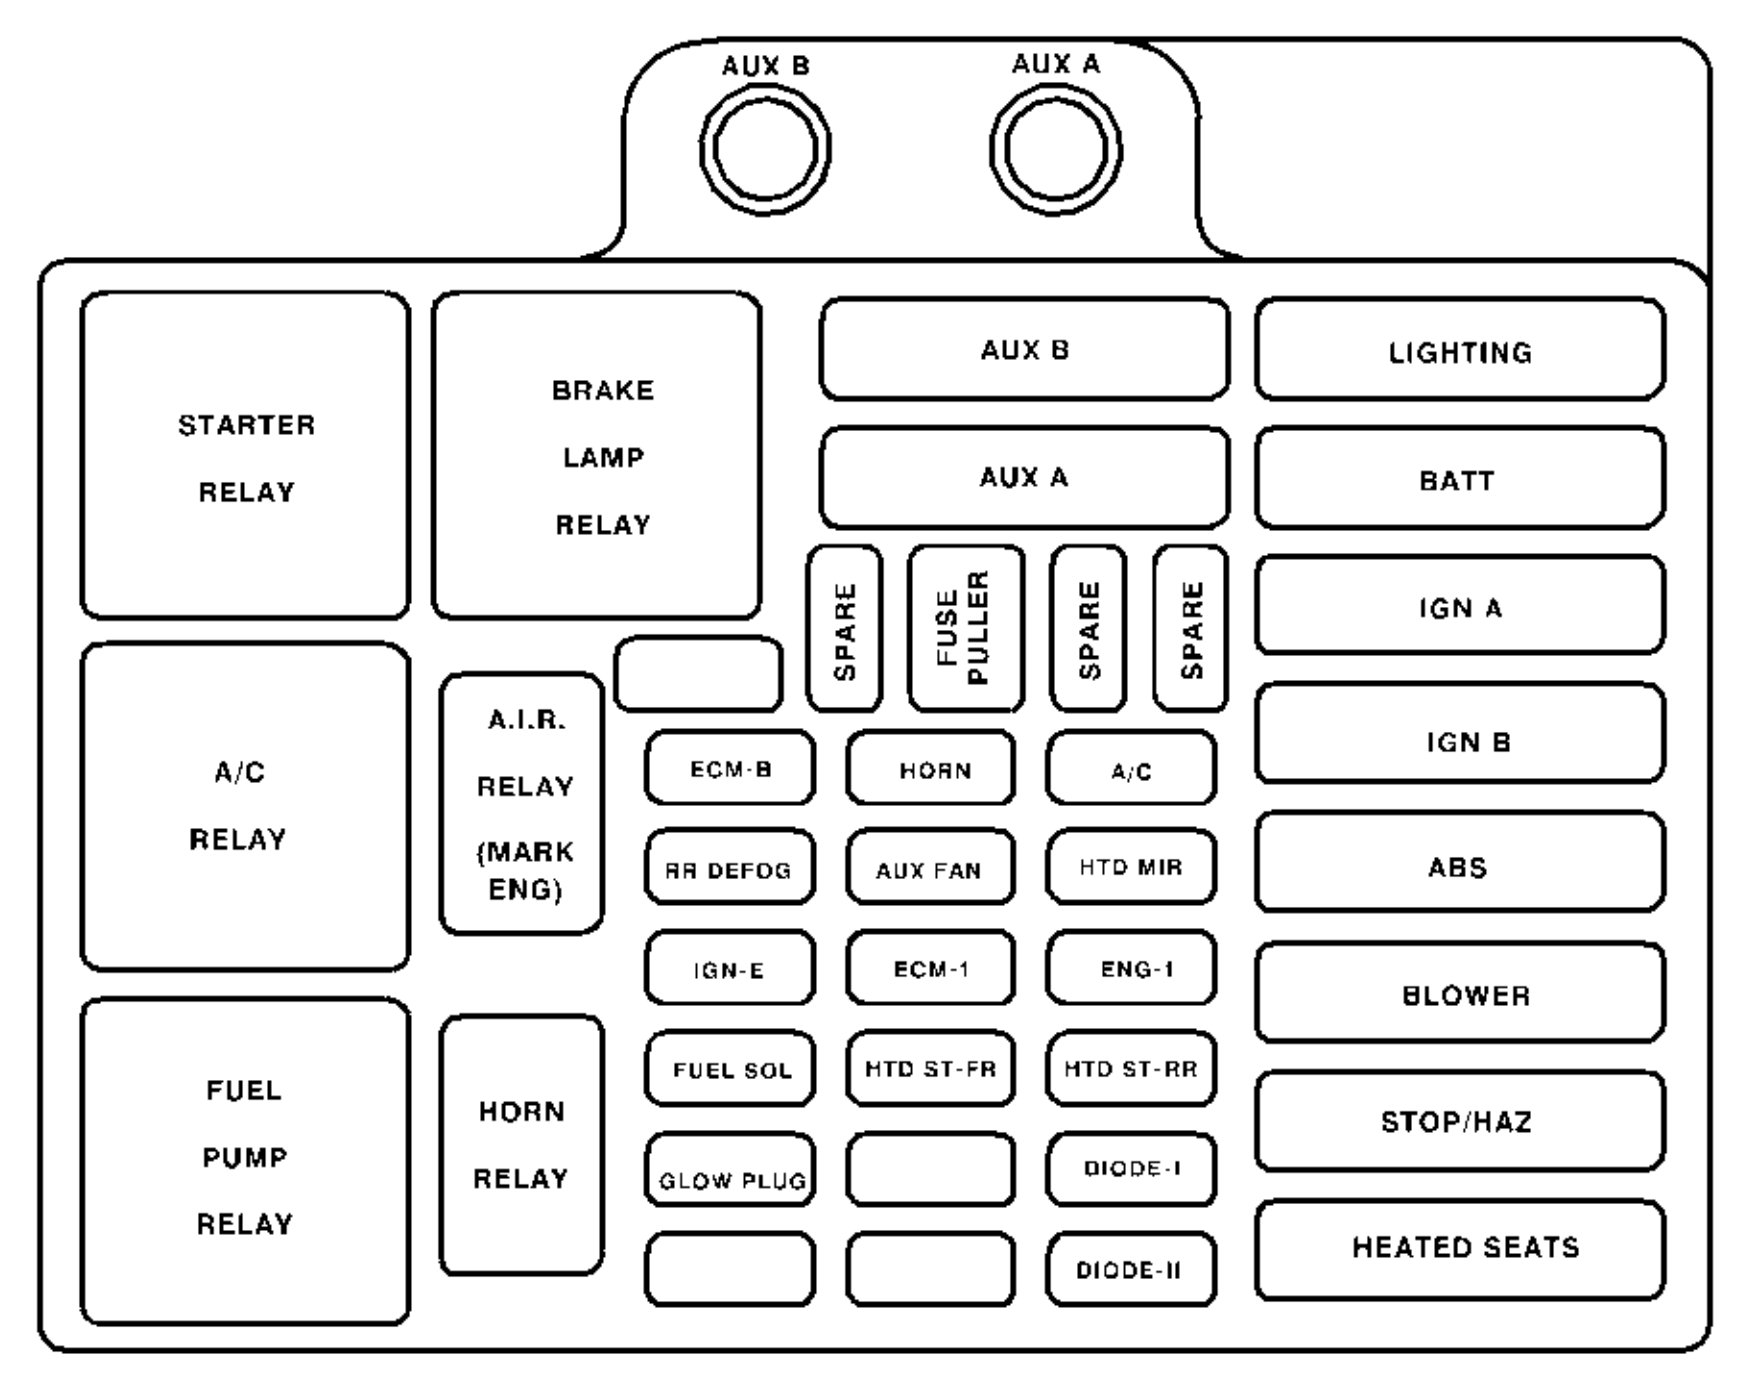 1995 Chevy Suburban Fuse Box Diagram Free Wiring For You Chevrolet 1500 99 Best Site Harness 1993 Silverado